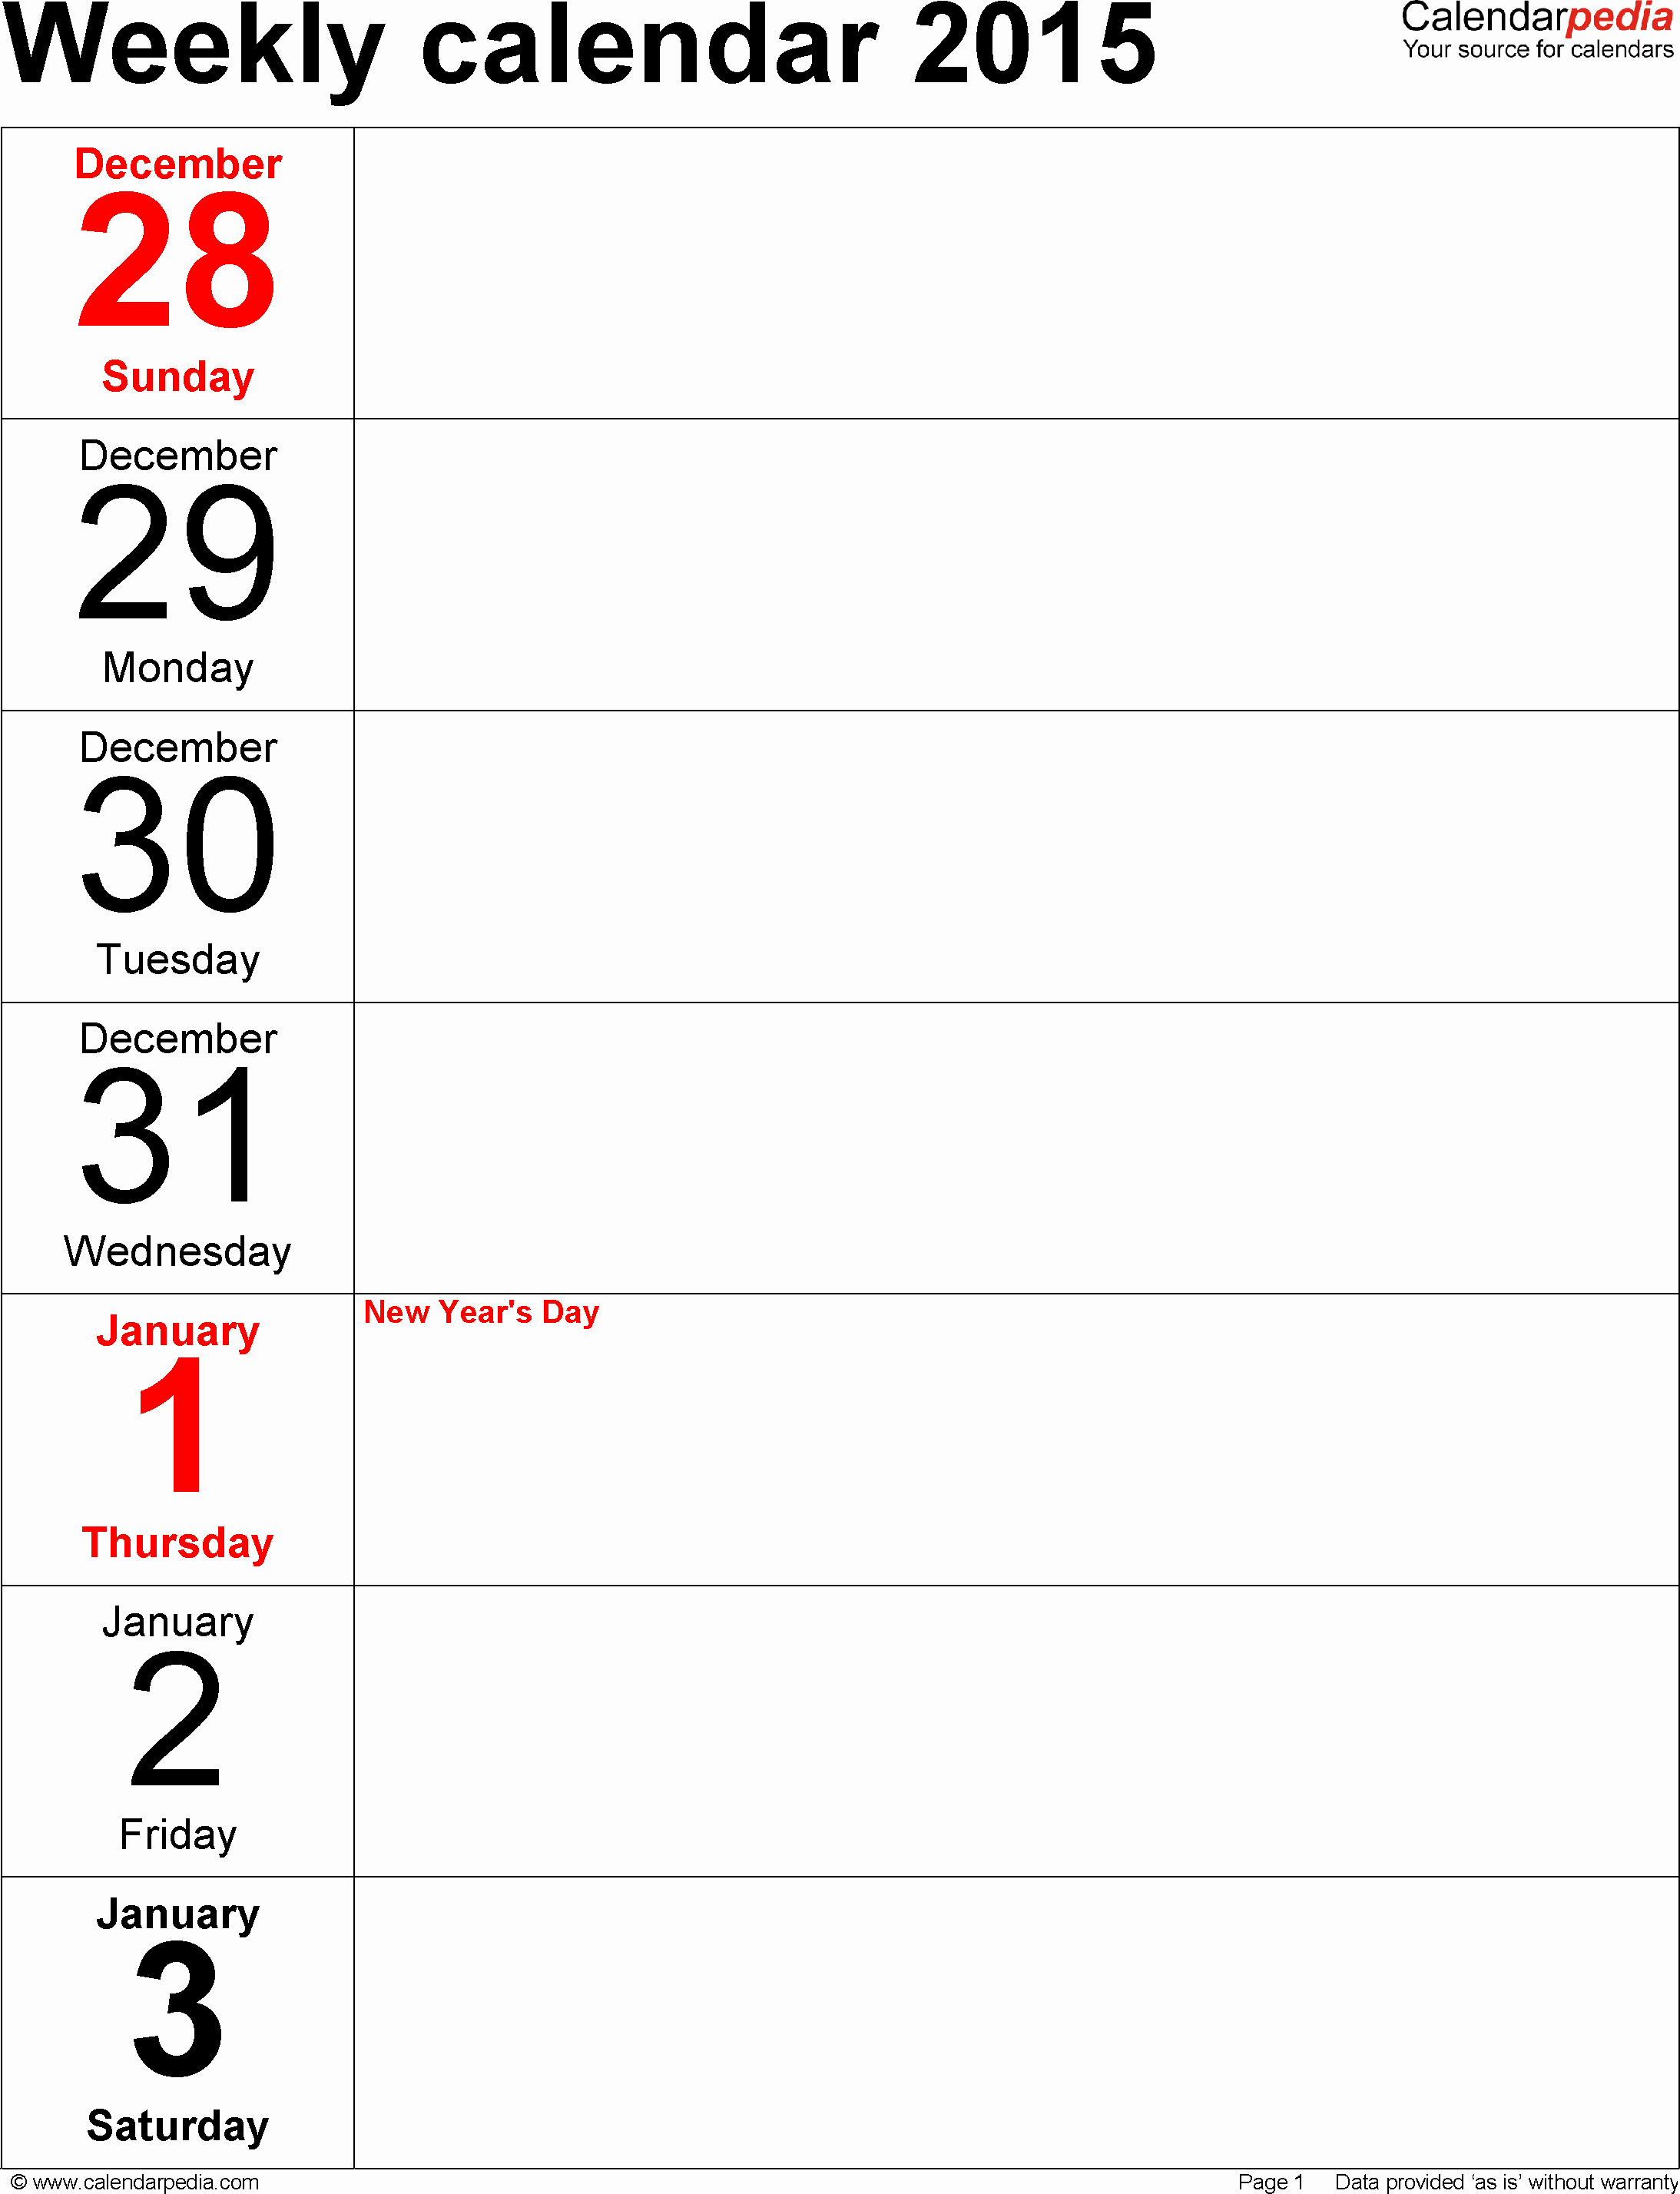 Week by Week Calendar Template Inspirational Weekly Calendar 2015 for Pdf 12 Free Printable Templates